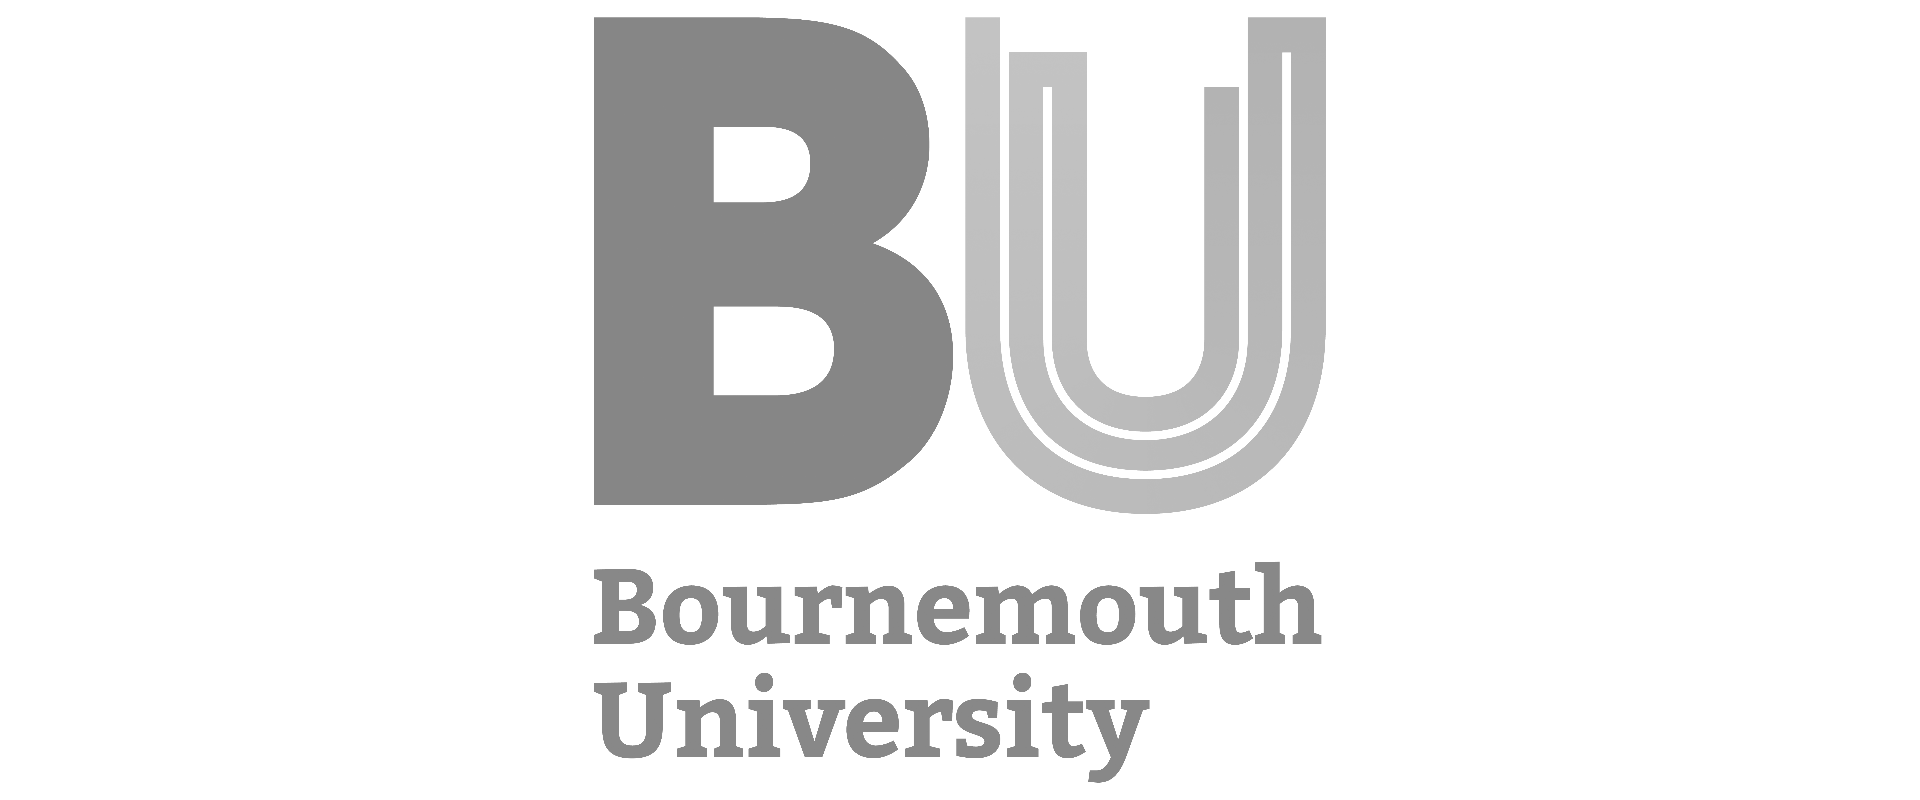 Studio 2 Media have produced for Bournemouth University